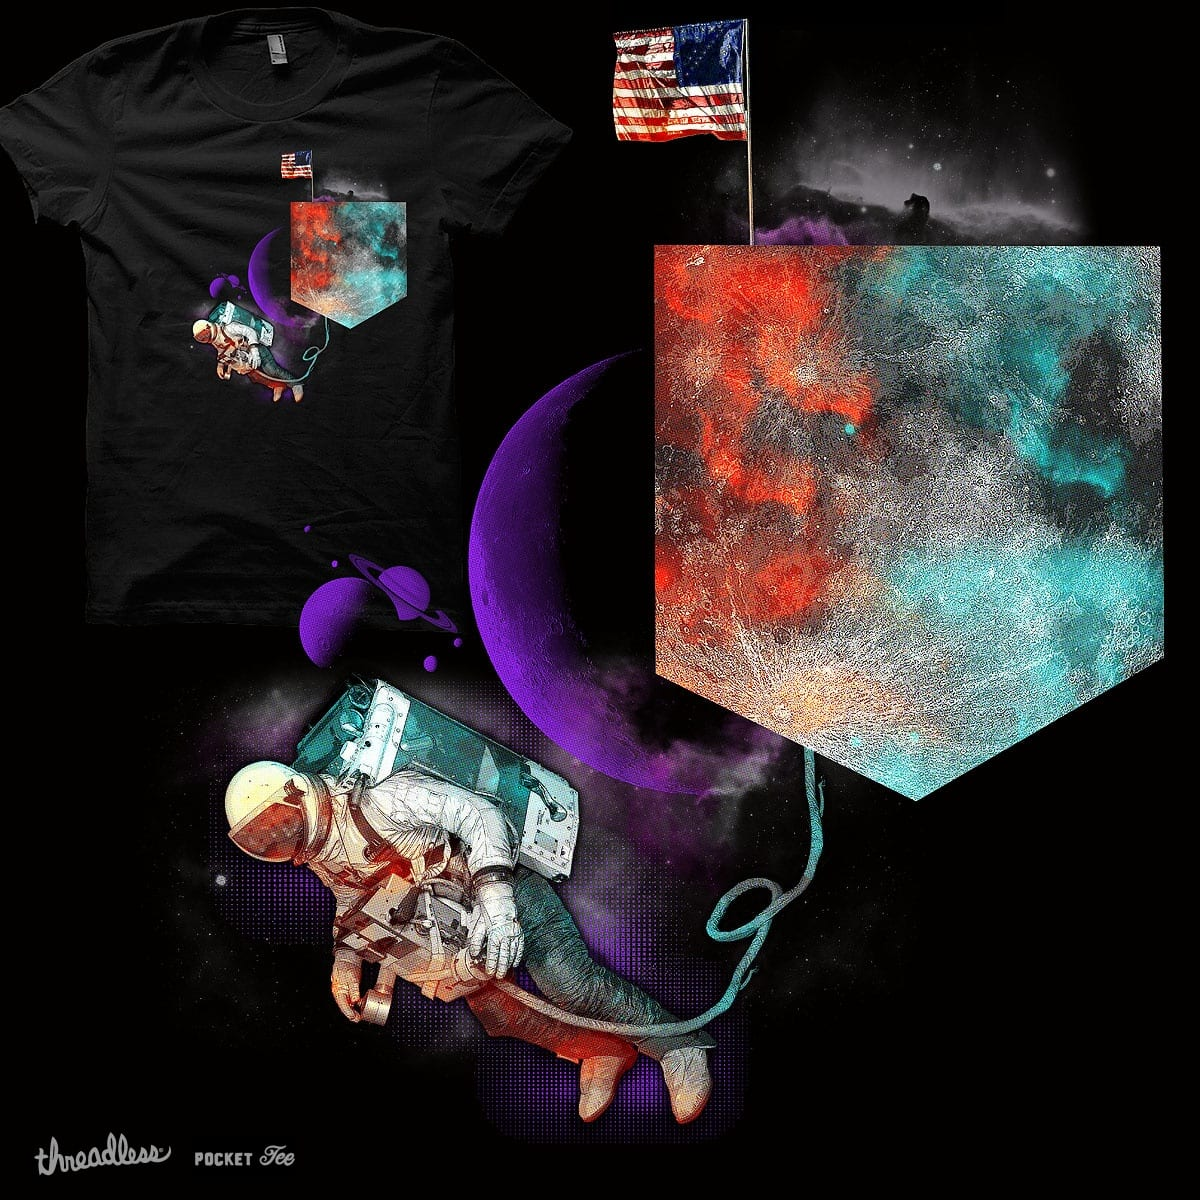 When Moon Lost it's Shape by Agimat ni Ingkong on Threadless